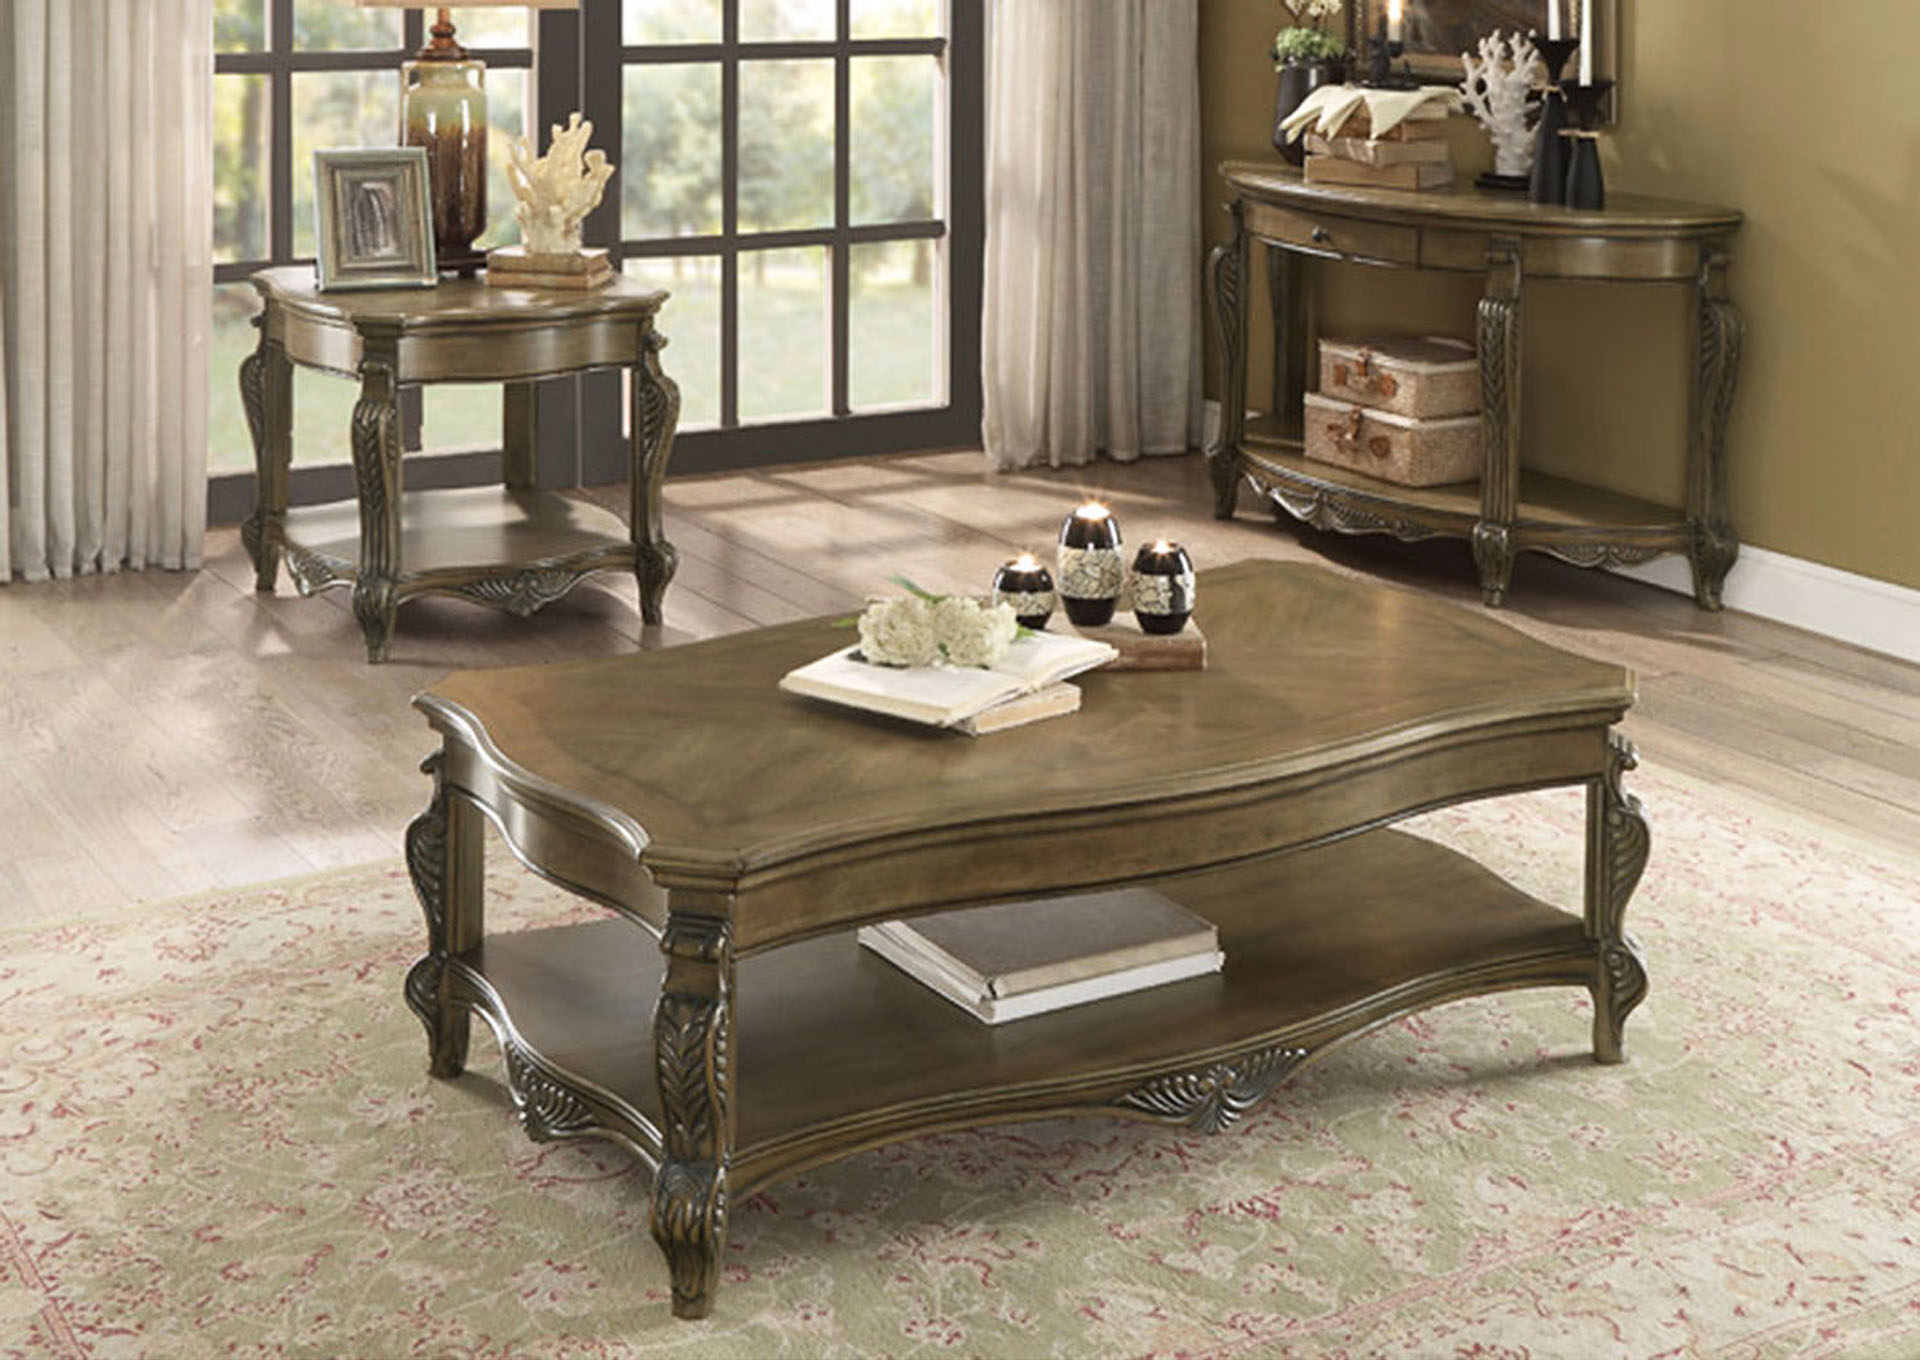 Sofa Table w/1 Functional Drawer,Homelegance